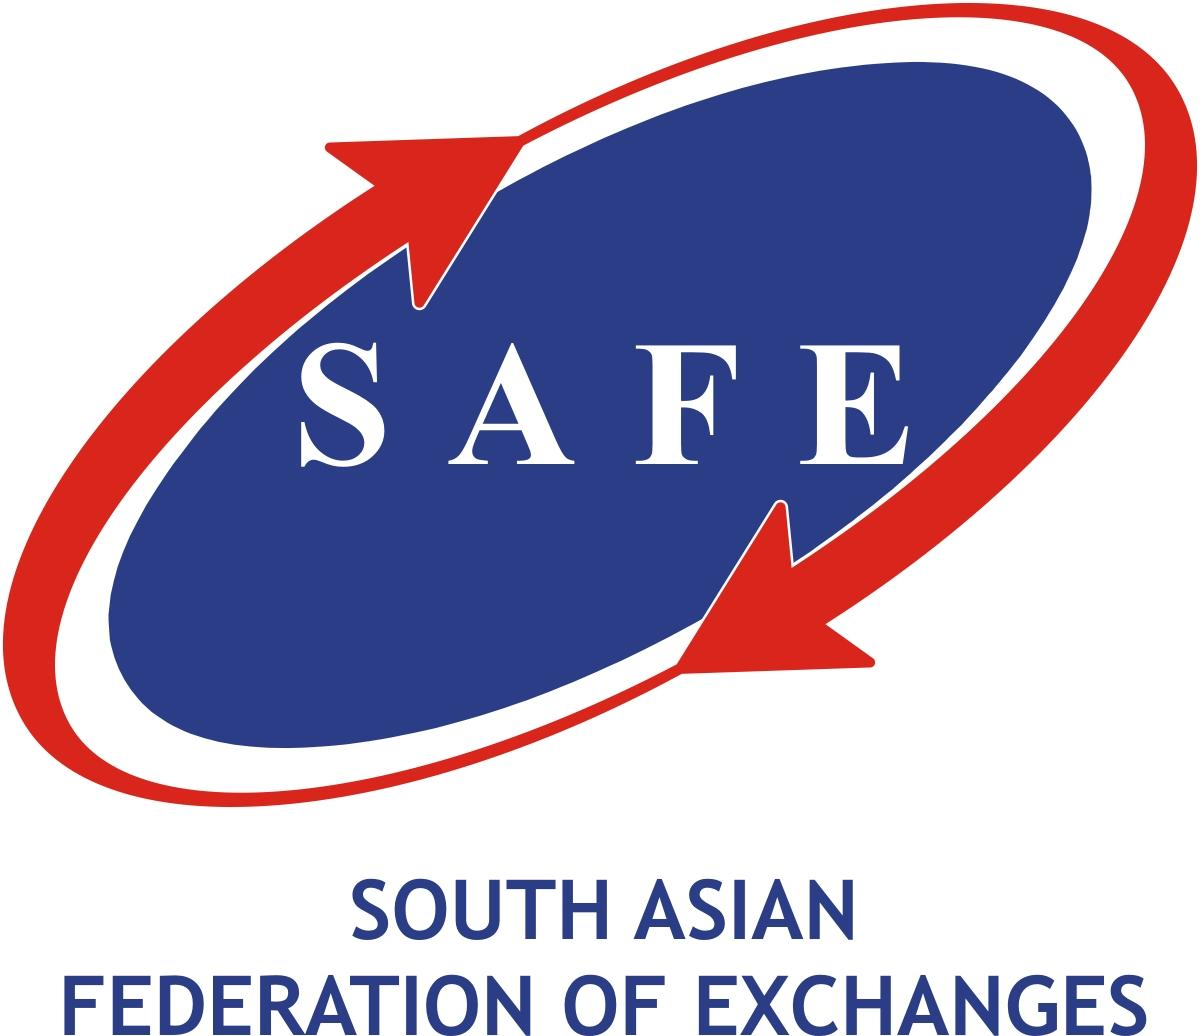 logo for South Asian Federation of Exchanges